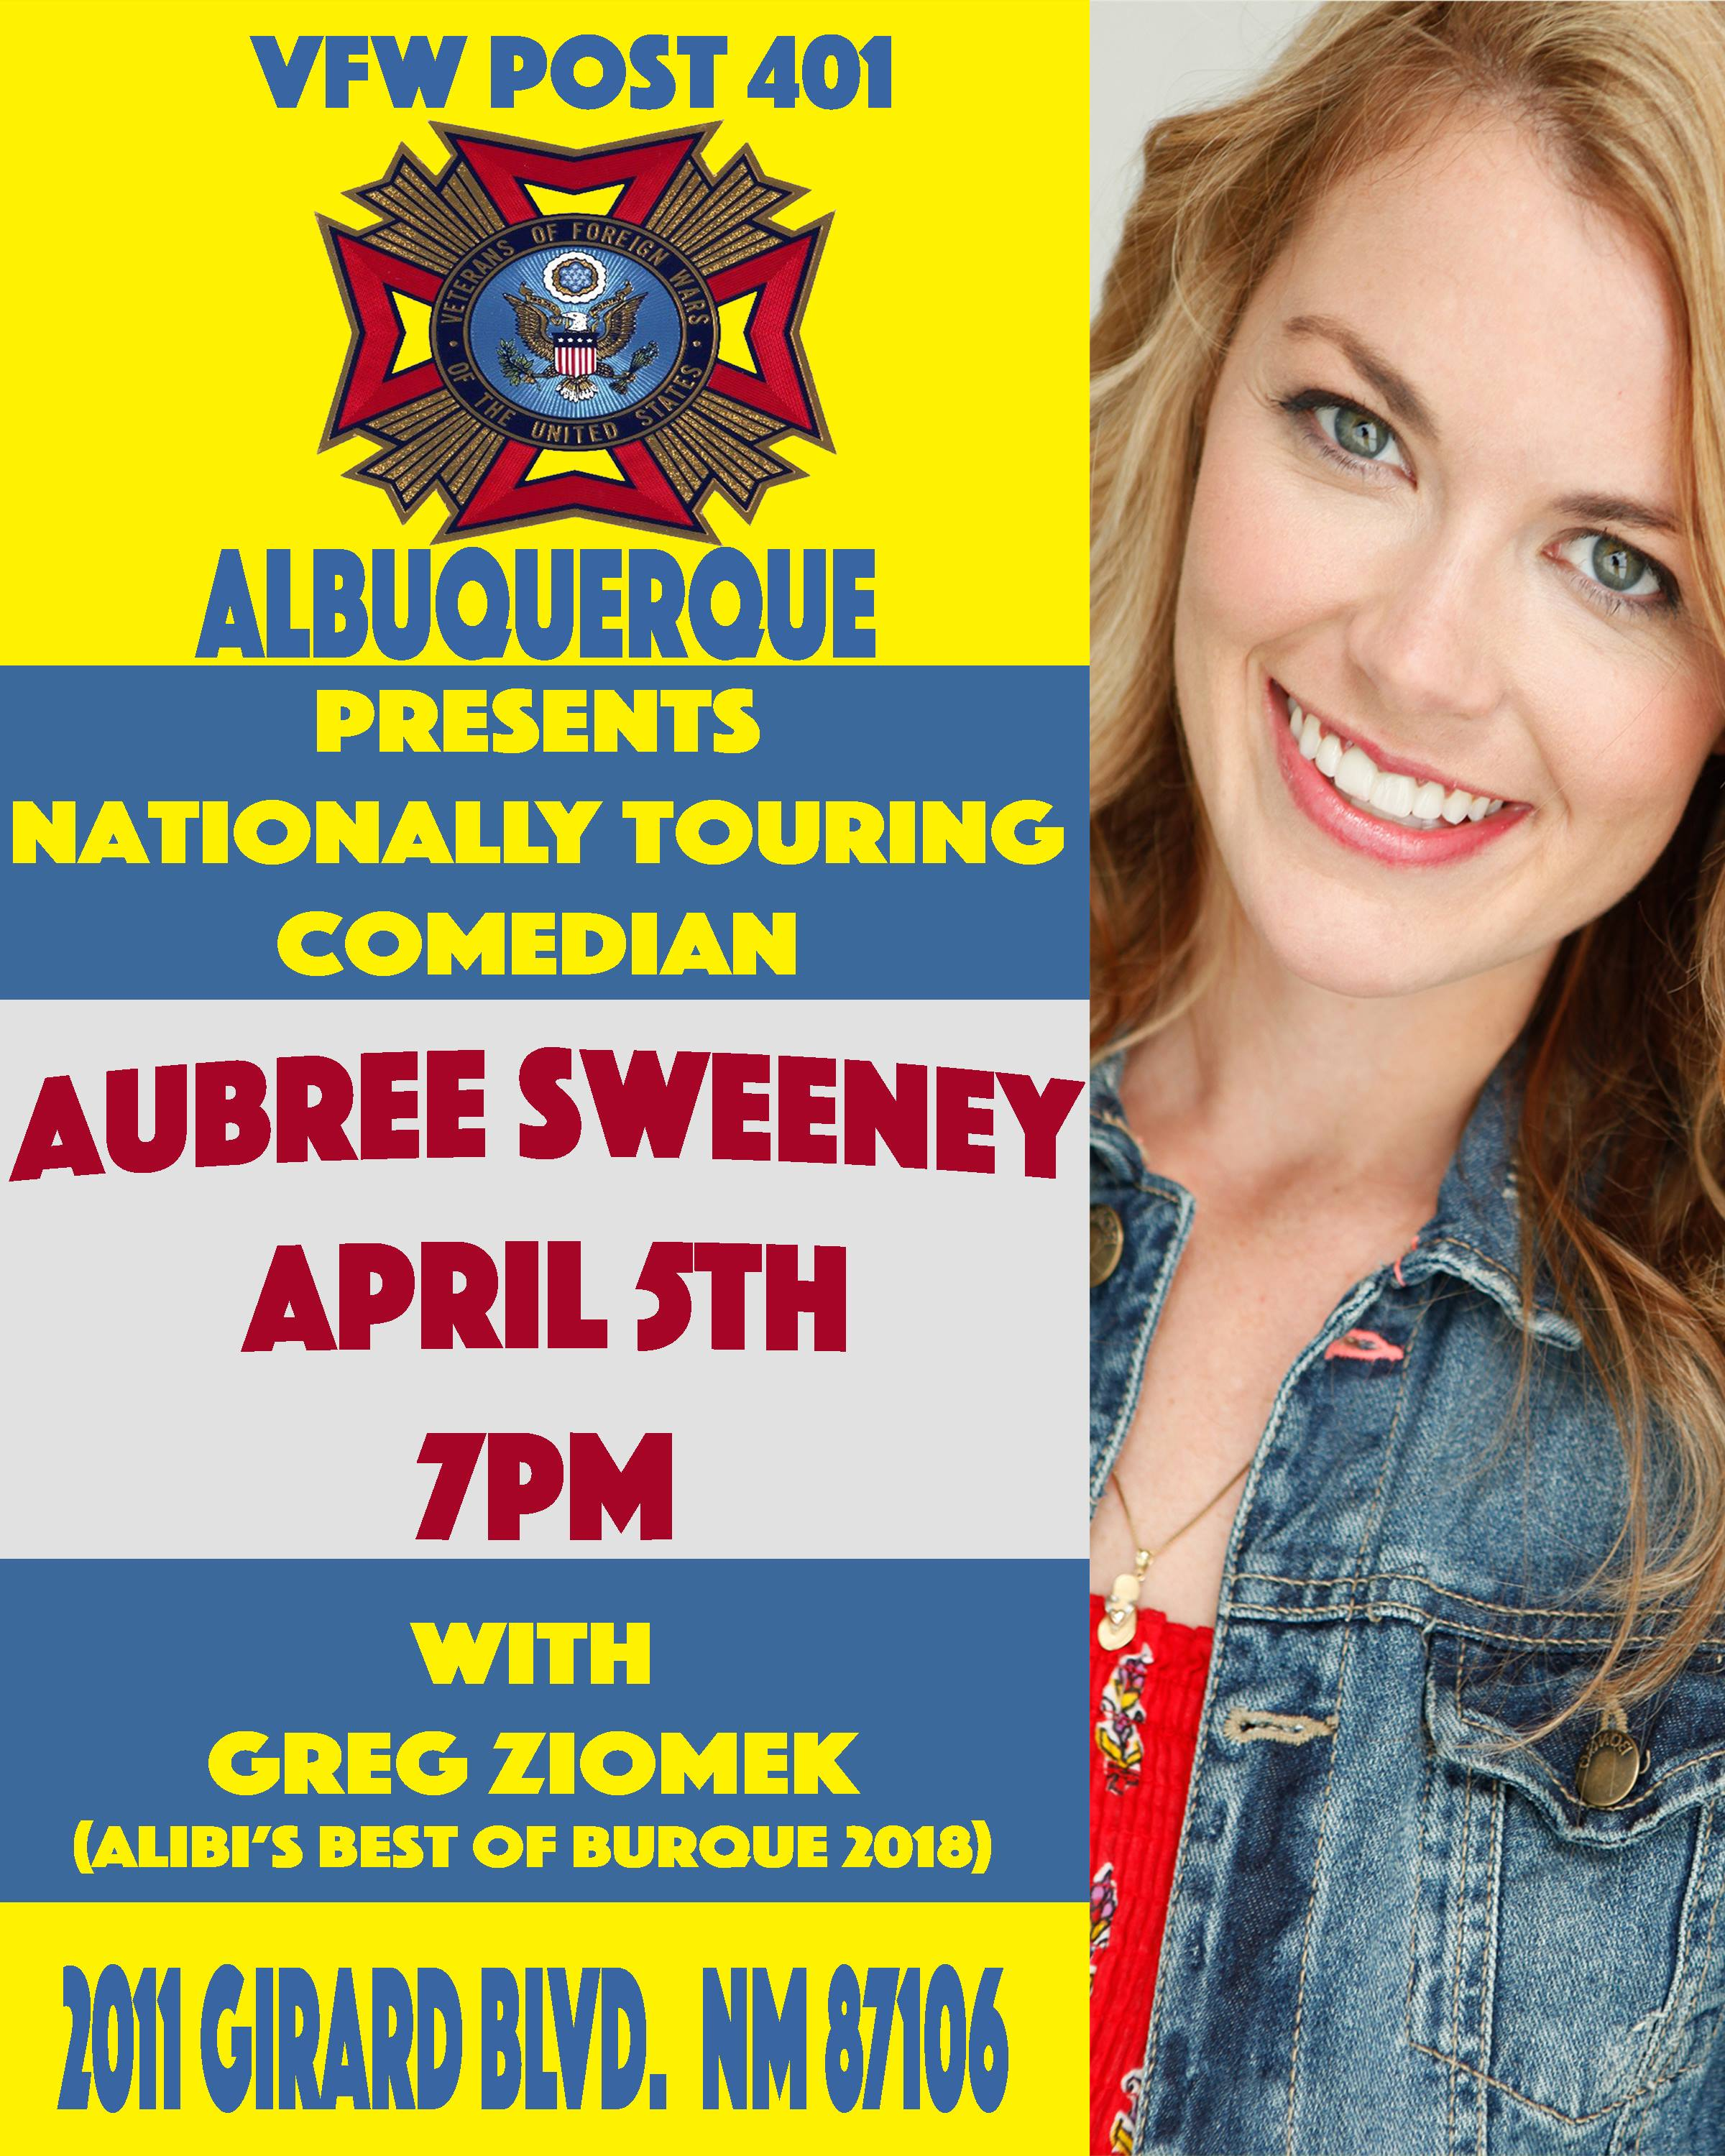 Stand-Up Comedy With Aubree Sweeney And Greg Ziomek At VFW